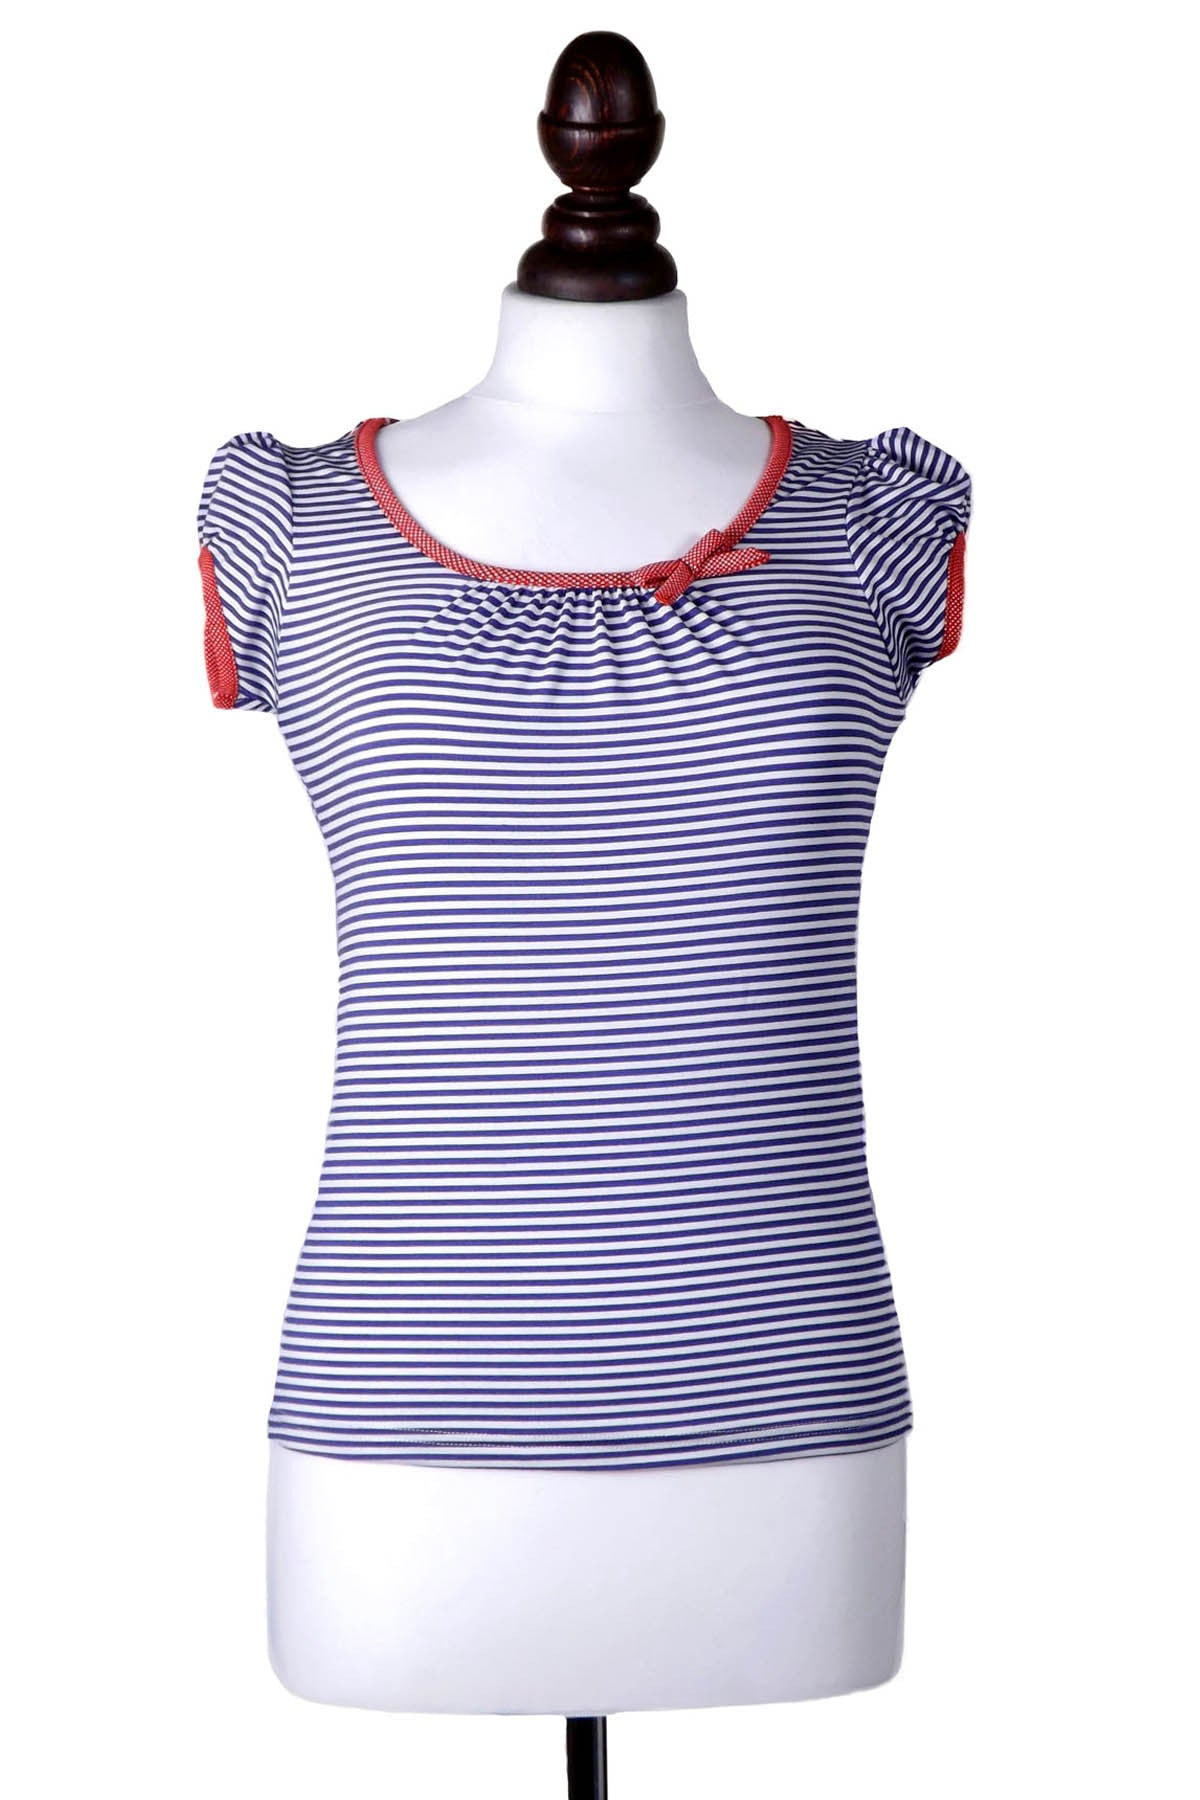 Striped Short Sleeve Sailor Top - Weekend Doll